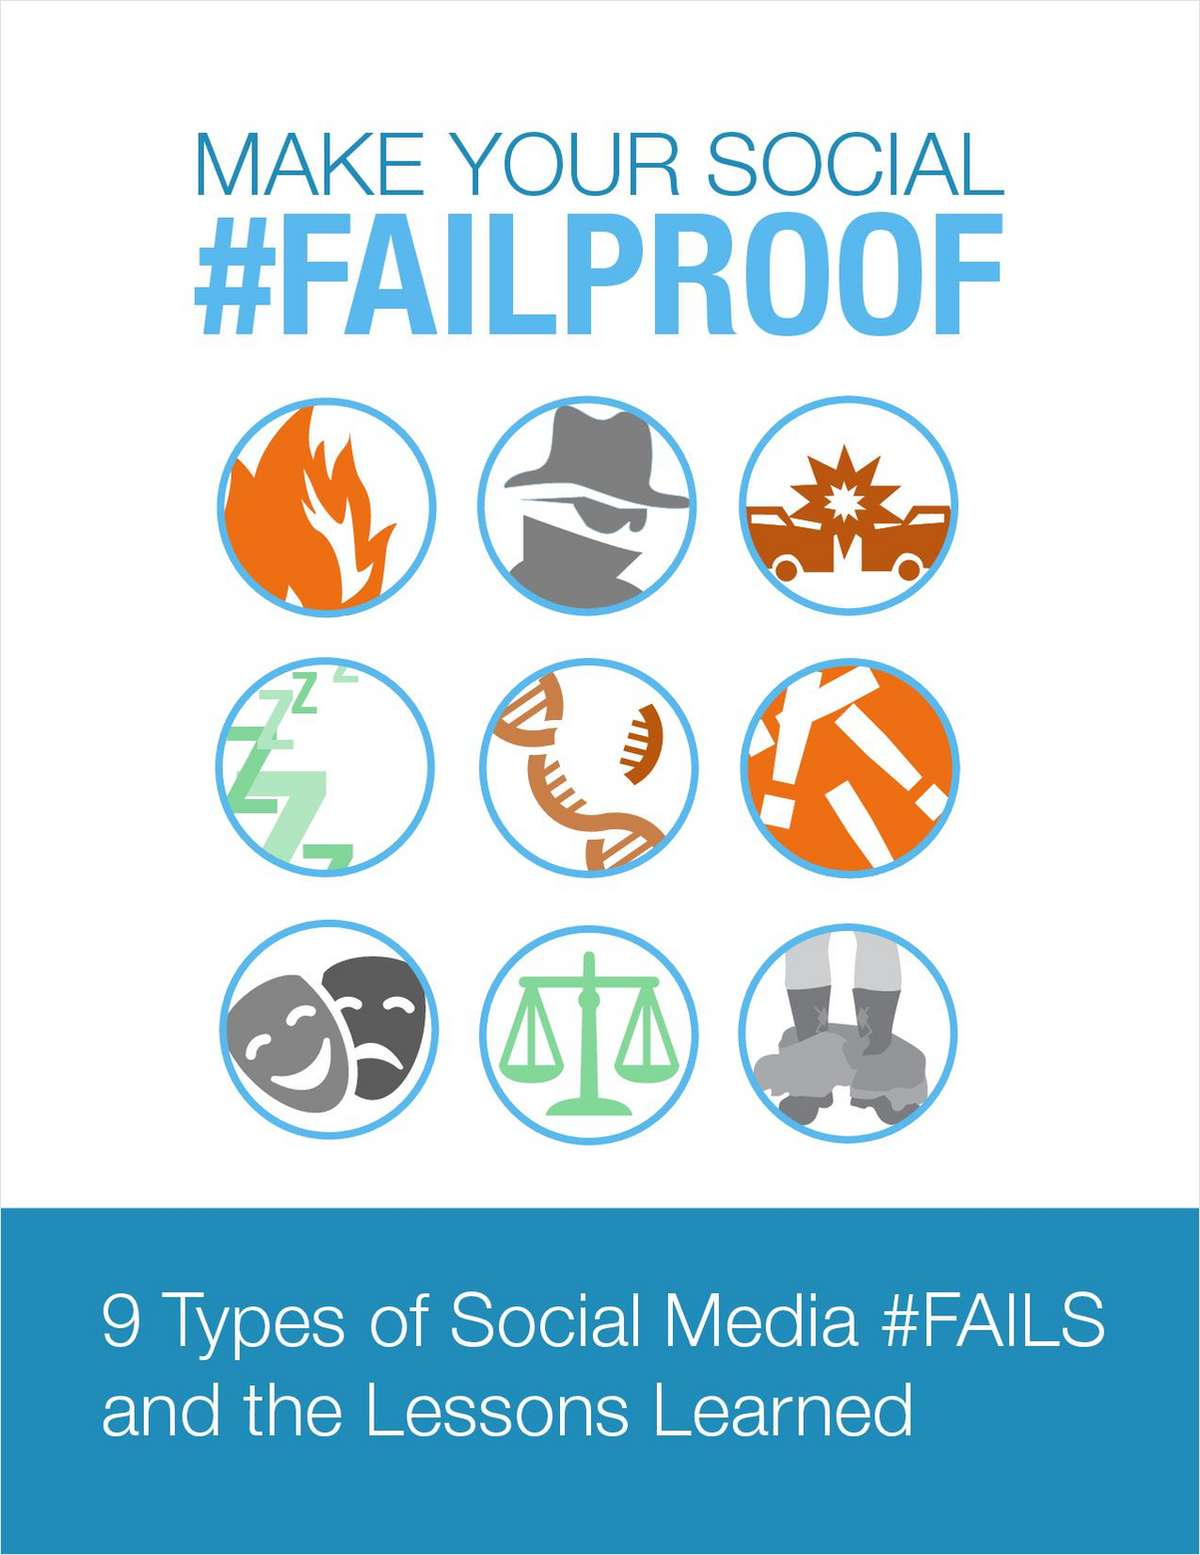 The 9 Types of Social Media Fails and How to Avoid Them